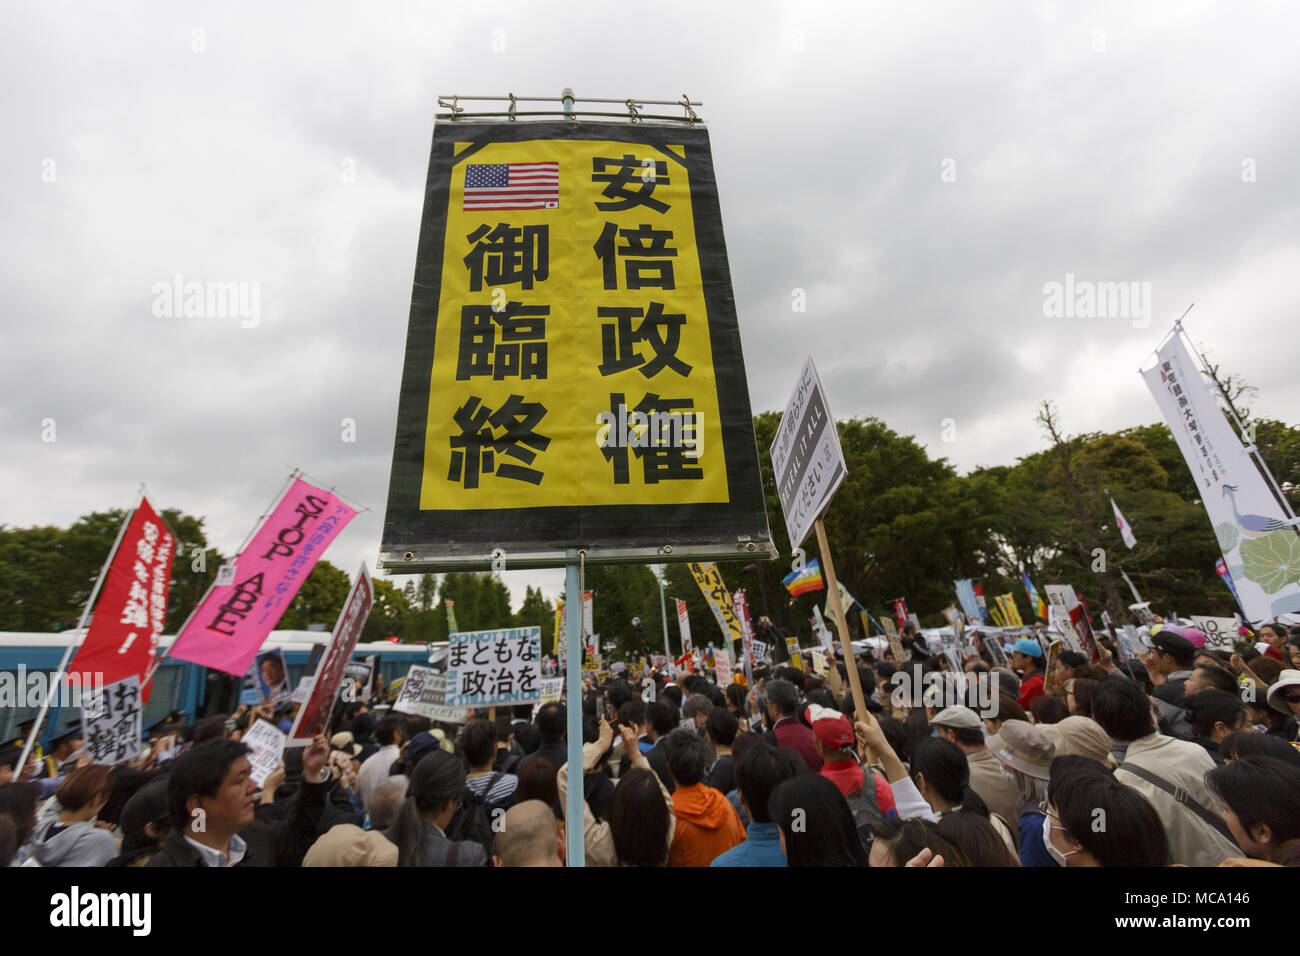 Tokyo, Japan. 14th Apr, 2018. Anti-Abe protesters gather in front the National Diet Building claiming PM Shinzo Abe's resignation in Tokyo, Japan. Organizers claim about 30,000 protesters joined the rally demanding Abe's resignation for the Moritomo Gakuen and Kake Gakuen scandals. Credit: Rodrigo Reyes Marin/via ZUMA Wire/ZUMA Wire/Alamy Live News - Stock Image